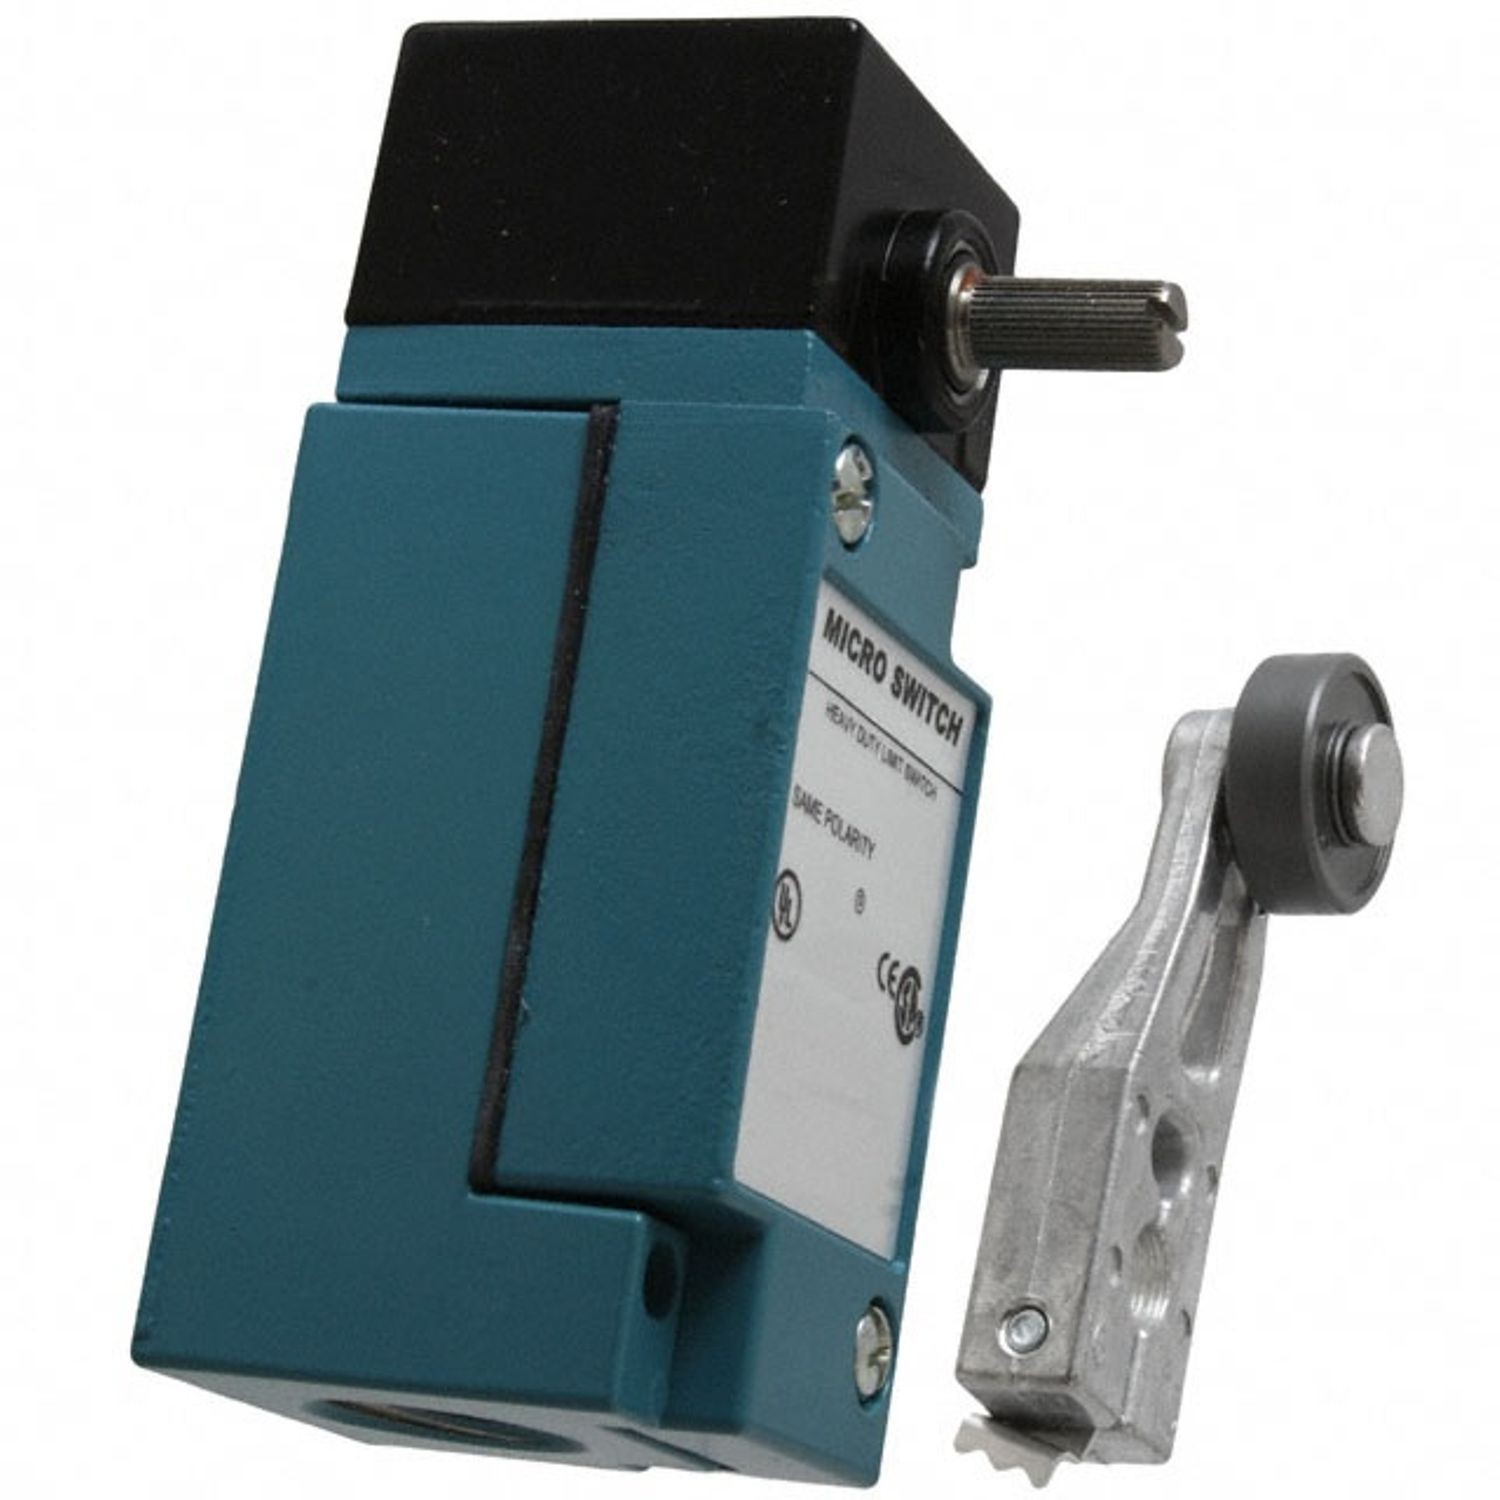 Honeywell Micro Switch Hdls Heavy Duty Limit 600 Vac 250 Vdc With Roller Lever 10 A Side Rotary Actuator 1 Poles